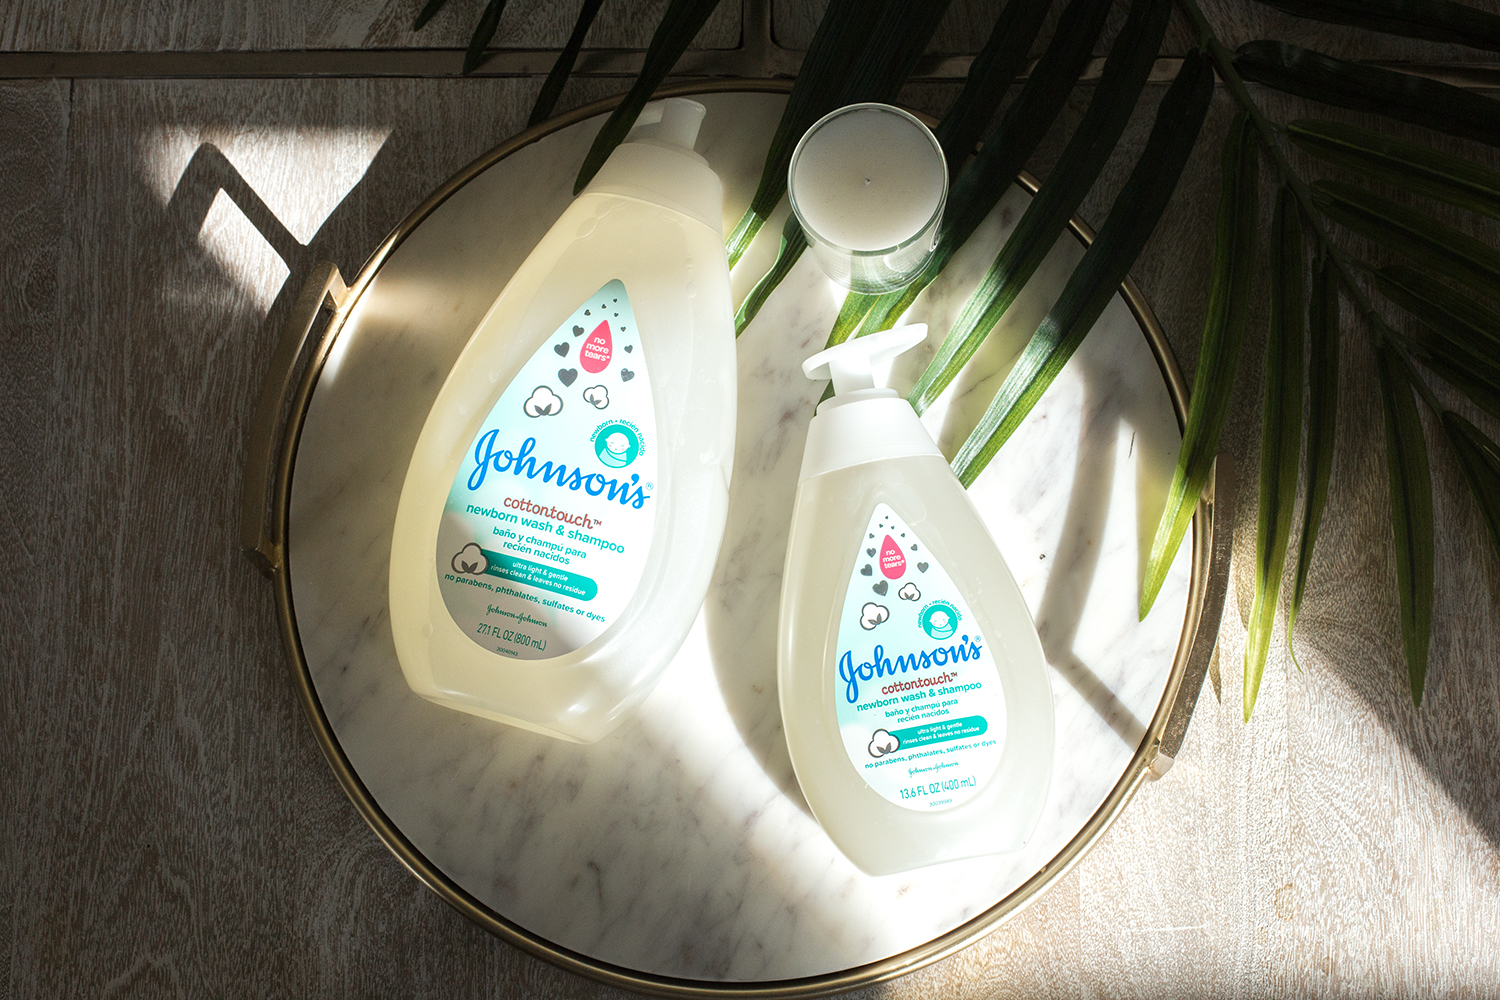 Johnson and Johnson CottonTouch